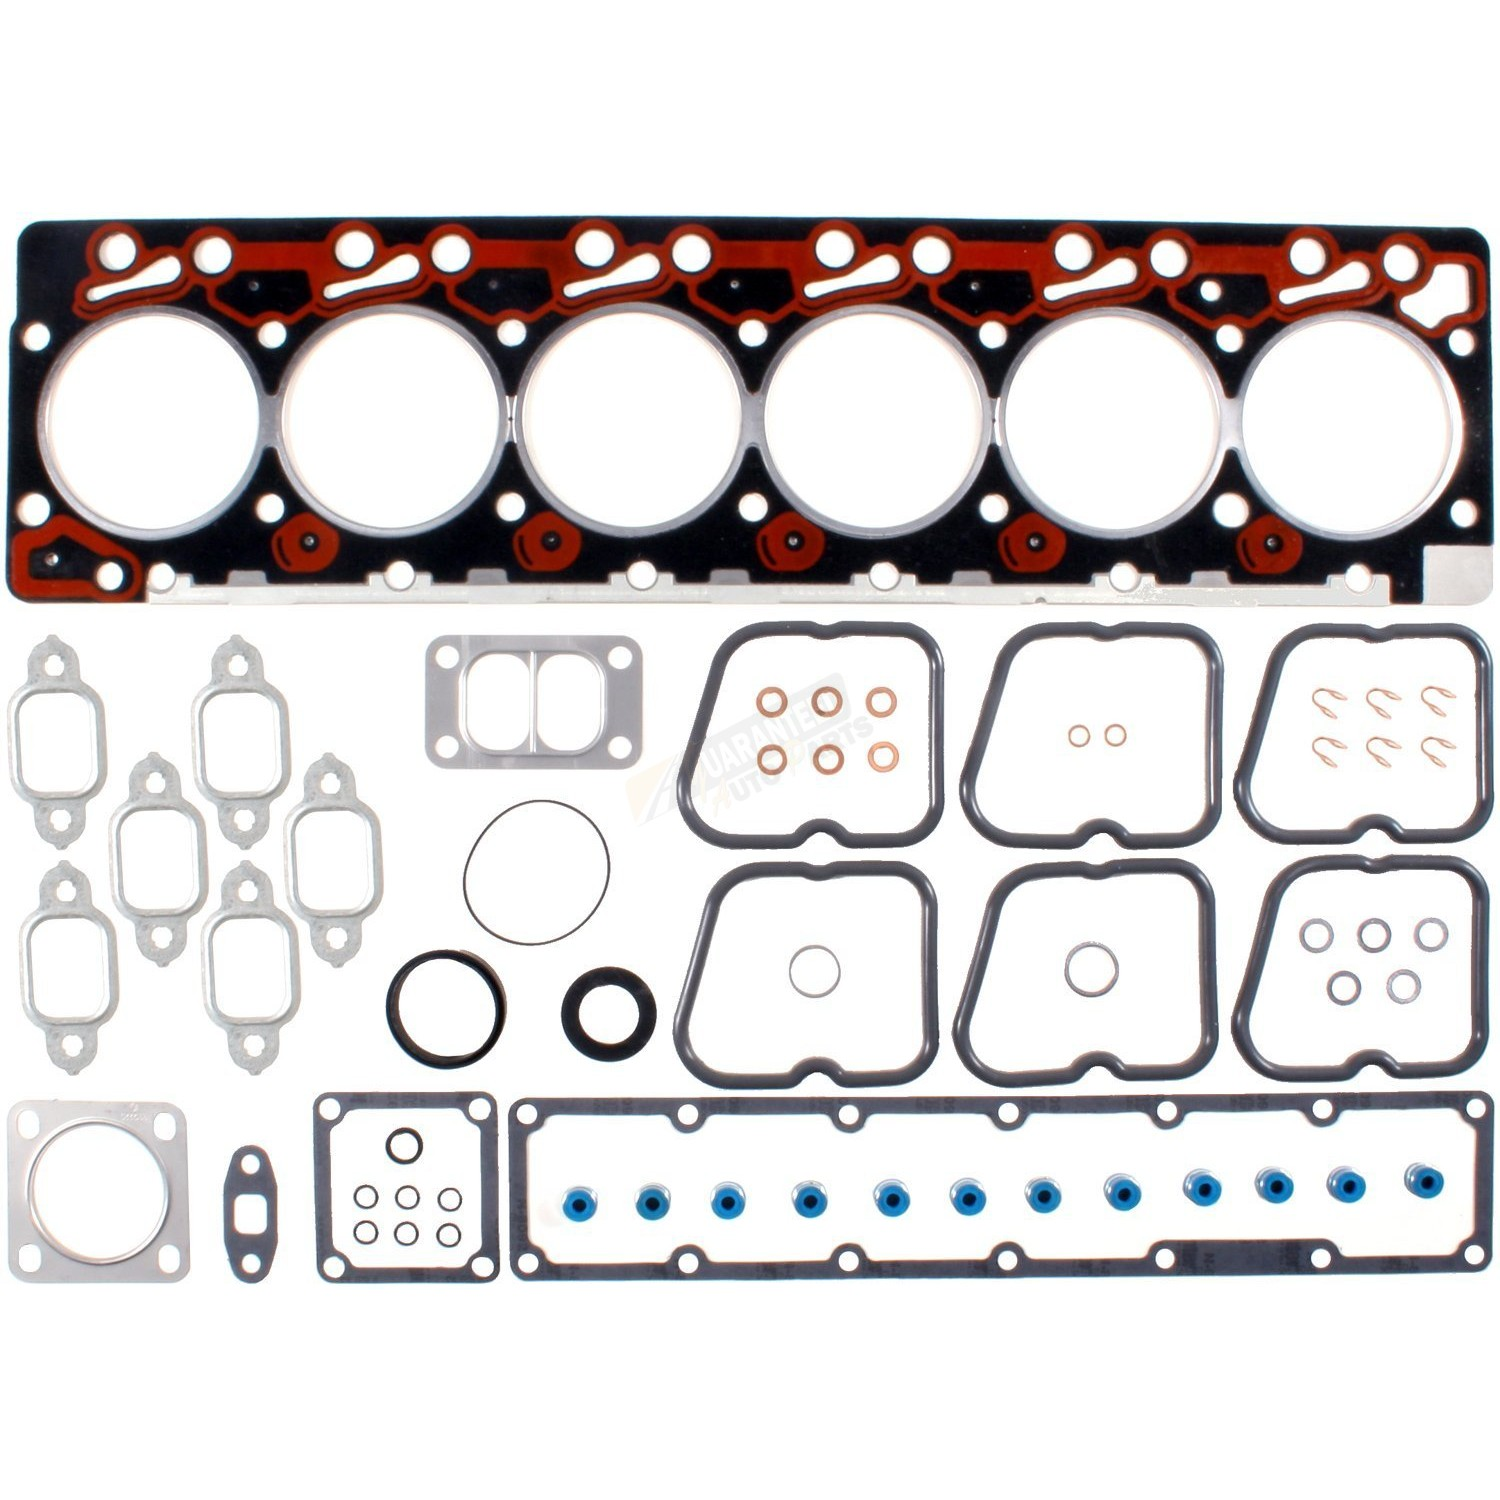 Mahle Head Set Gasket Kit - HS4068A